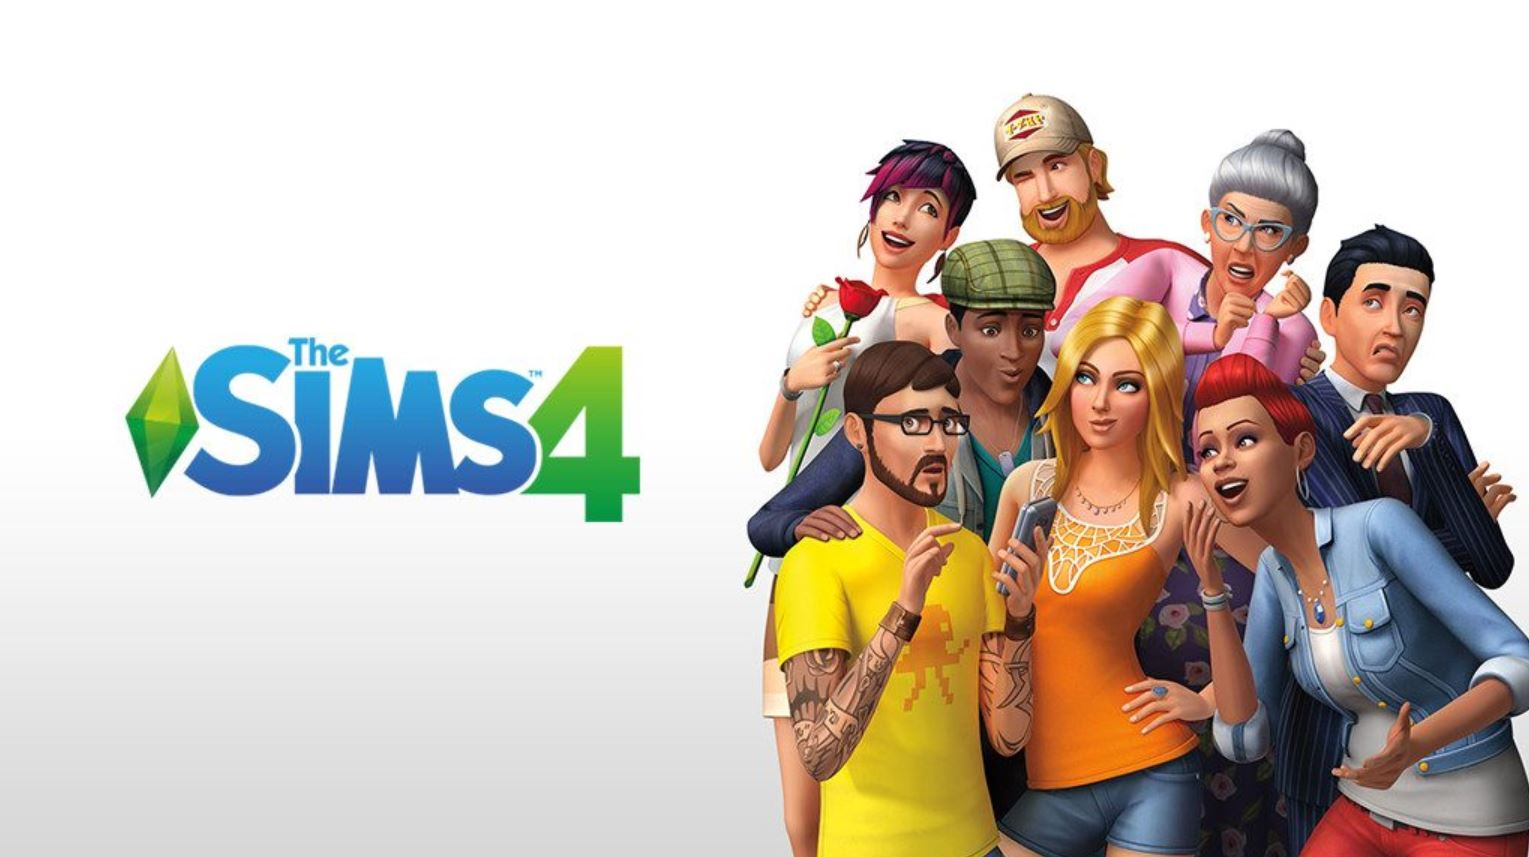 The Sims 4 Full Access: Secret, Change Mail, Password 2019